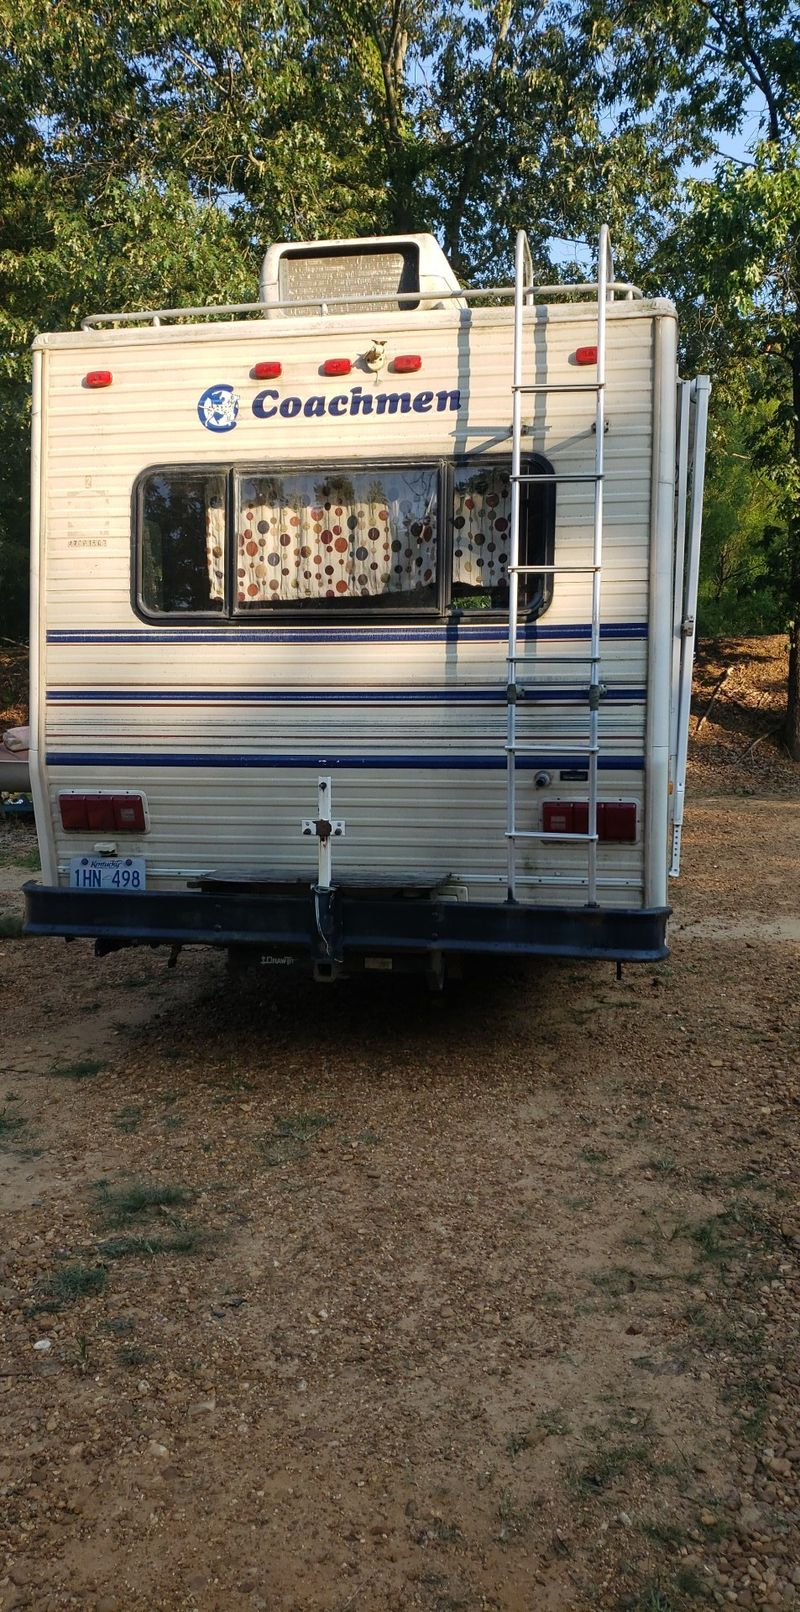 Picture 4/14 of a 1989 Catalina Coachman for sale in Benton, Kentucky